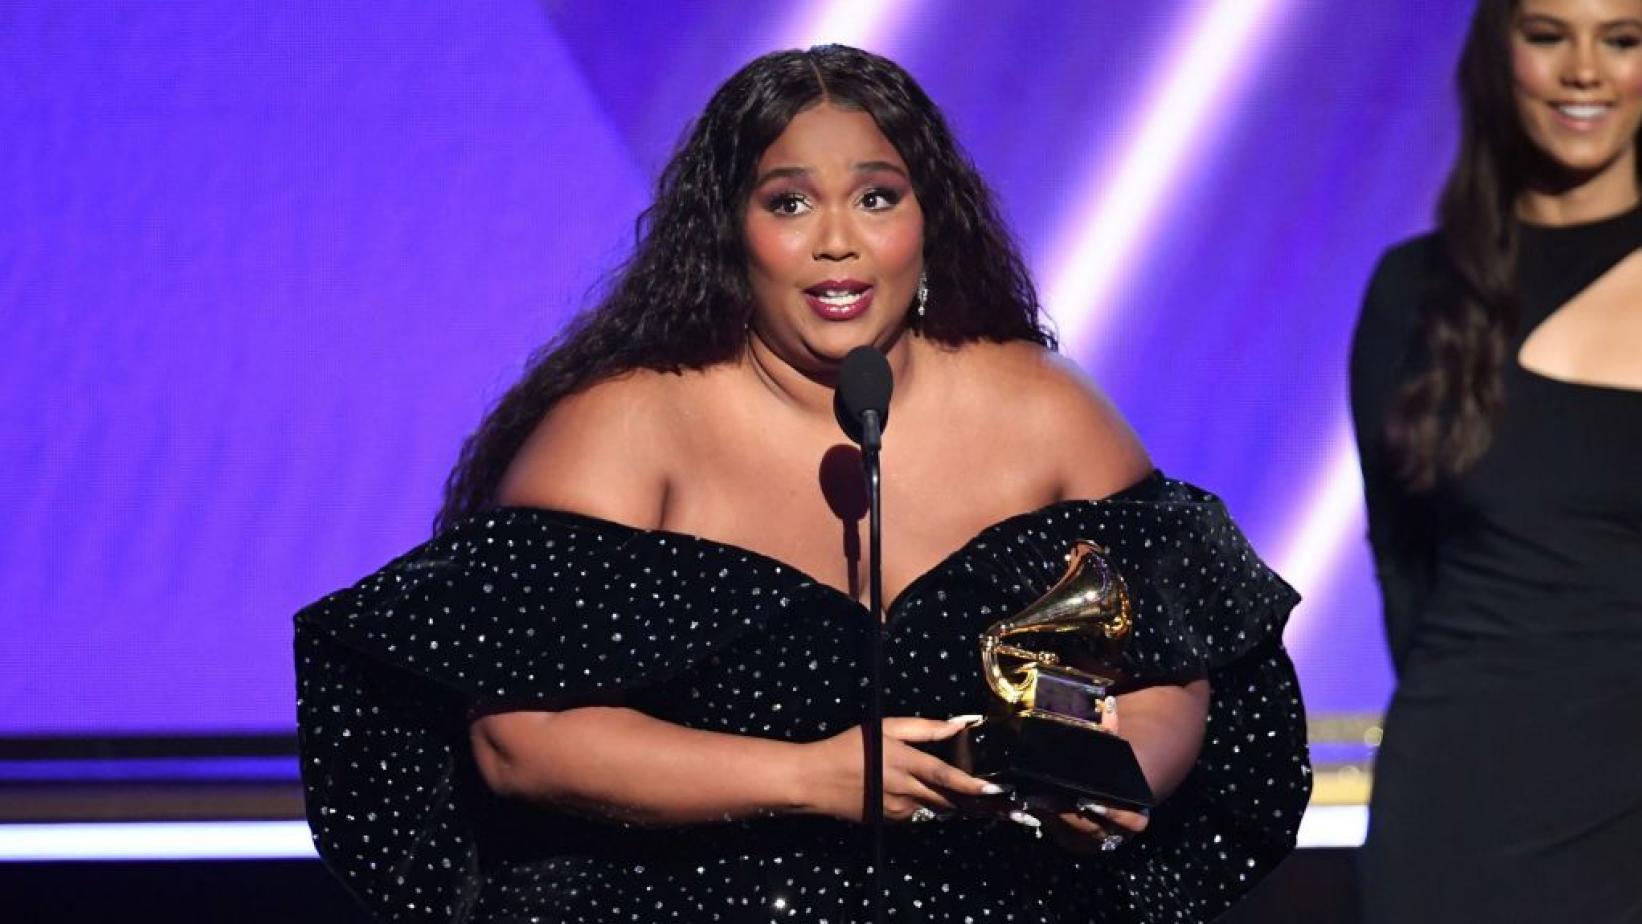 Lizzo Tears Up During Video Discussion About 'Black Lives Matter' And More – Check Out Her Powerful And Touching Speech!